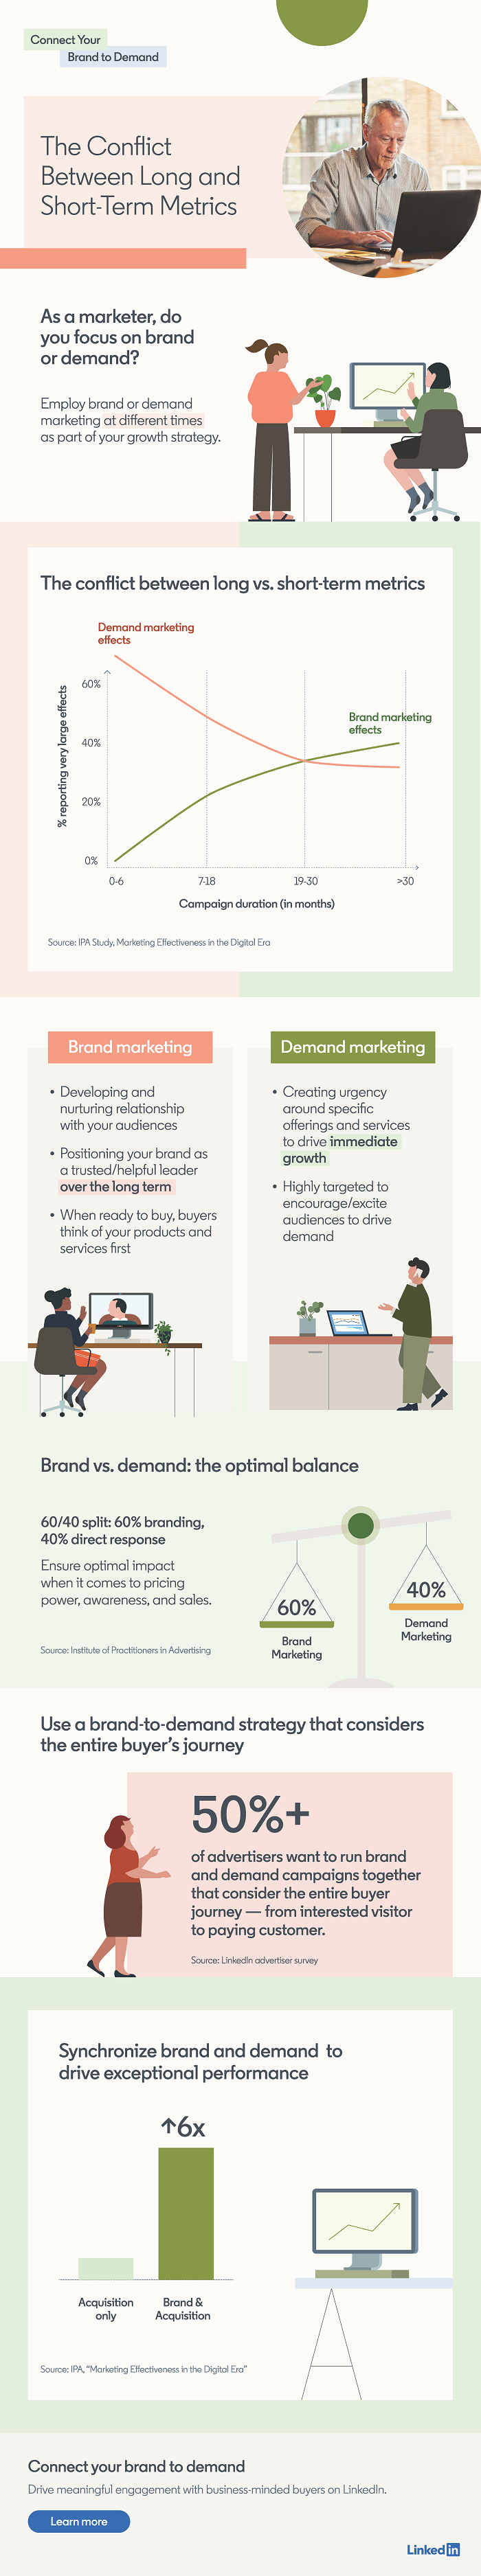 Infographic outlines key stats and data points in an effective brand and demand strategy